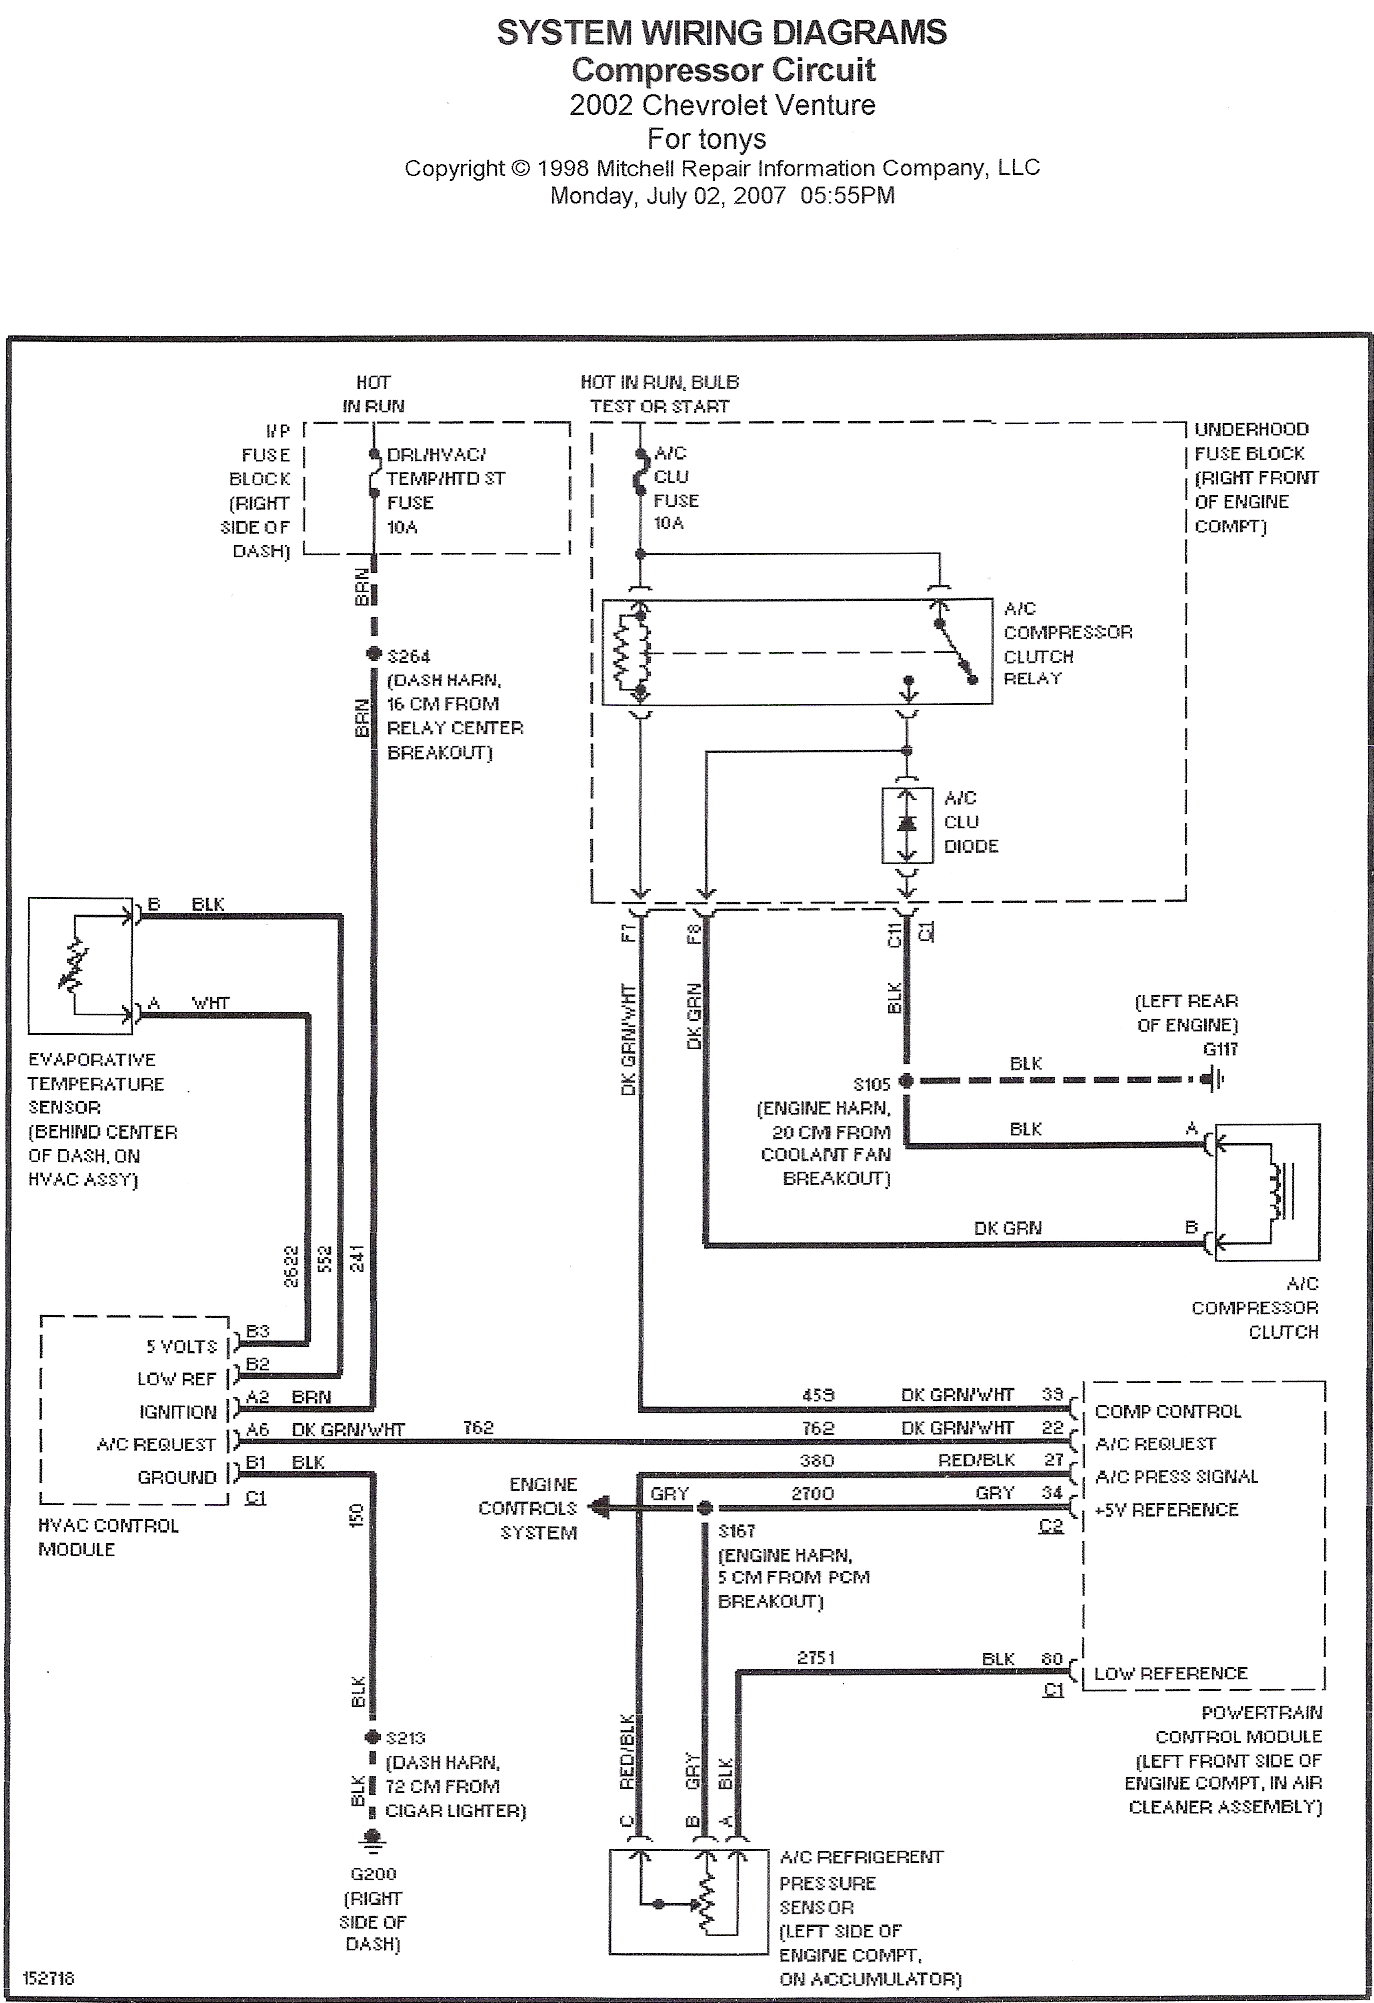 Centurylink Prism Wiring Diagram from wholefoodsonabudget.com